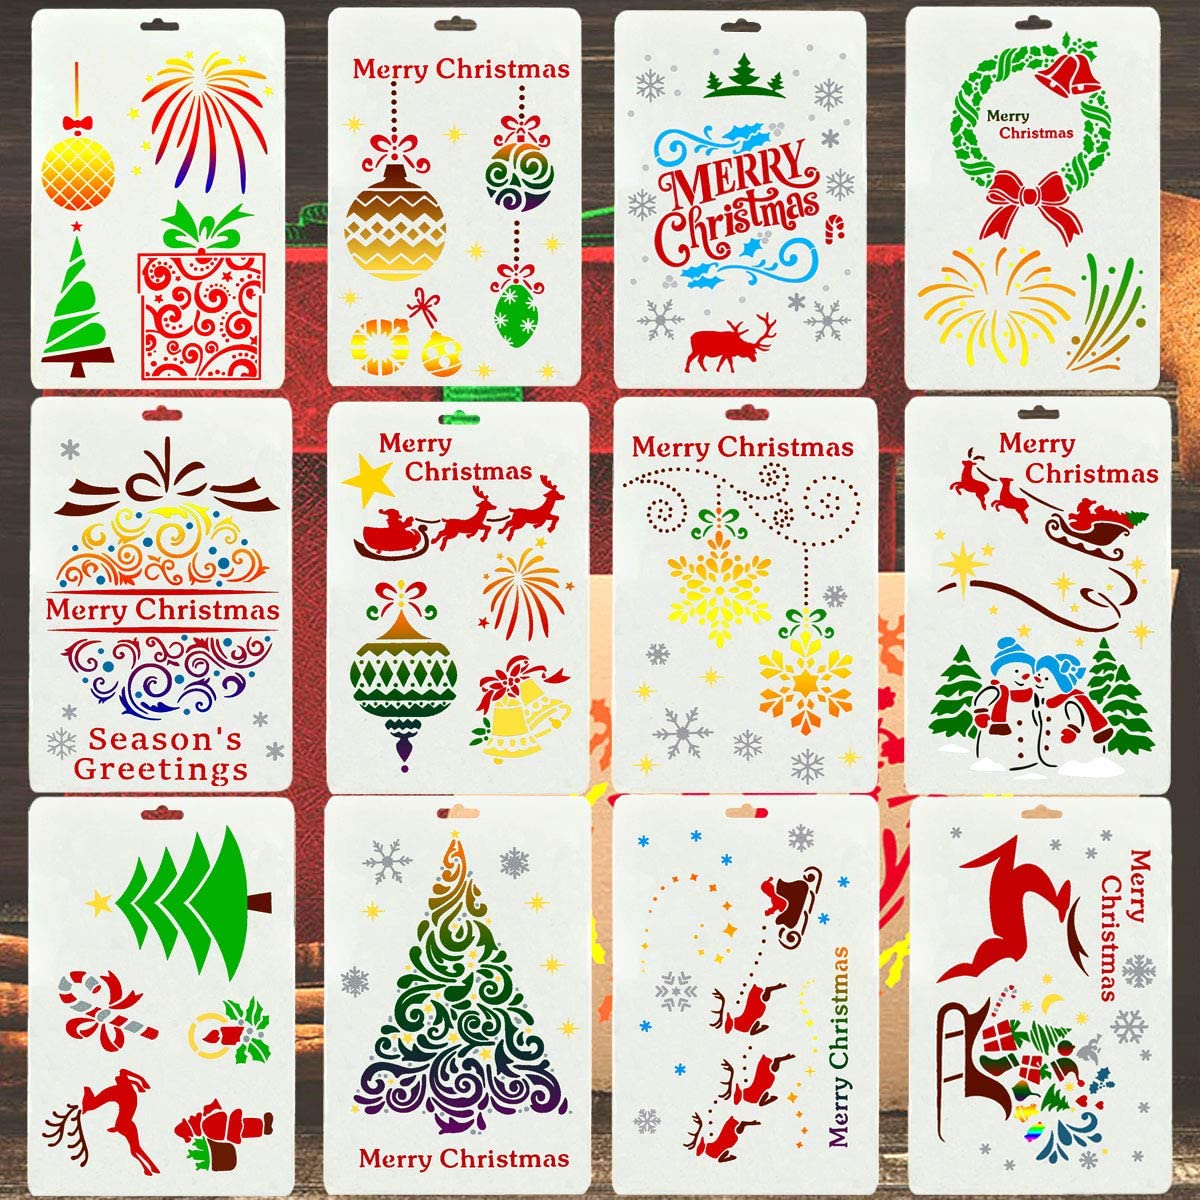 12 PCS Christmas Stencils for Painting on Wood, Reusable Merry Christmas Floor Tile Stencil for Christmas Decor Fabric Canvas Wall Painting, Window Spraying, Home Decor DIY-Painting Templates